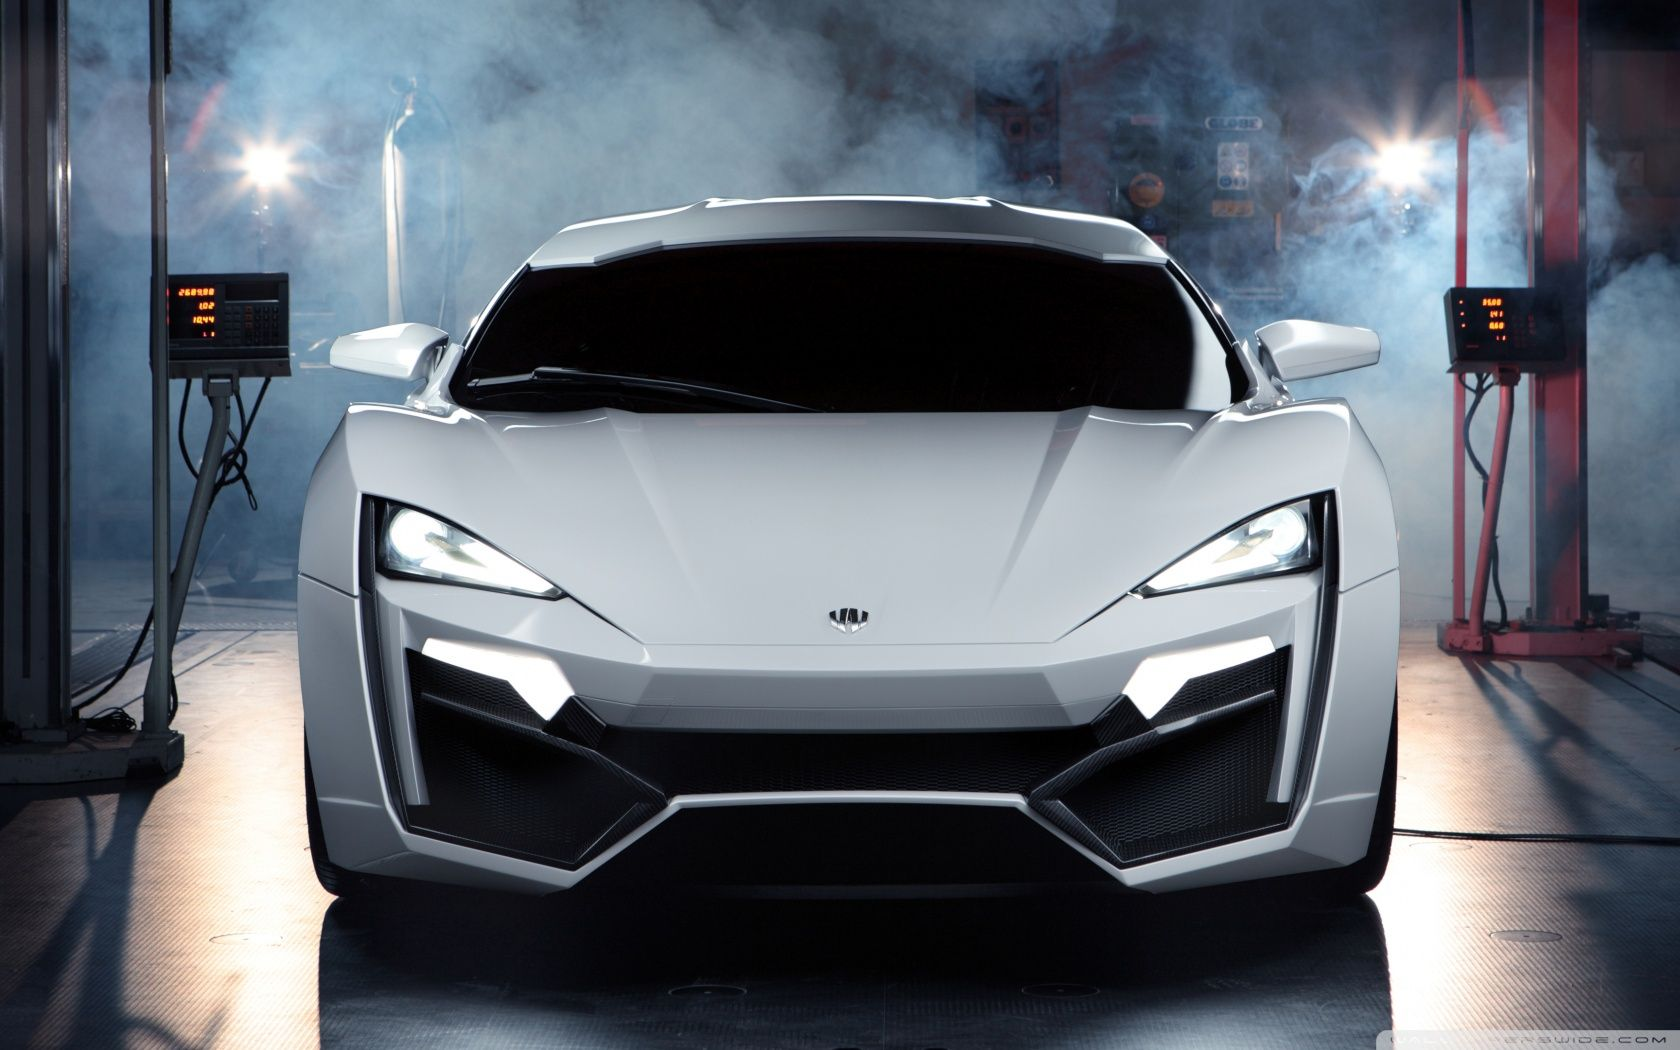 Top 10 Fastest Cars In The World 2019 In 2020 Super Cars Car Modern Muscle Cars